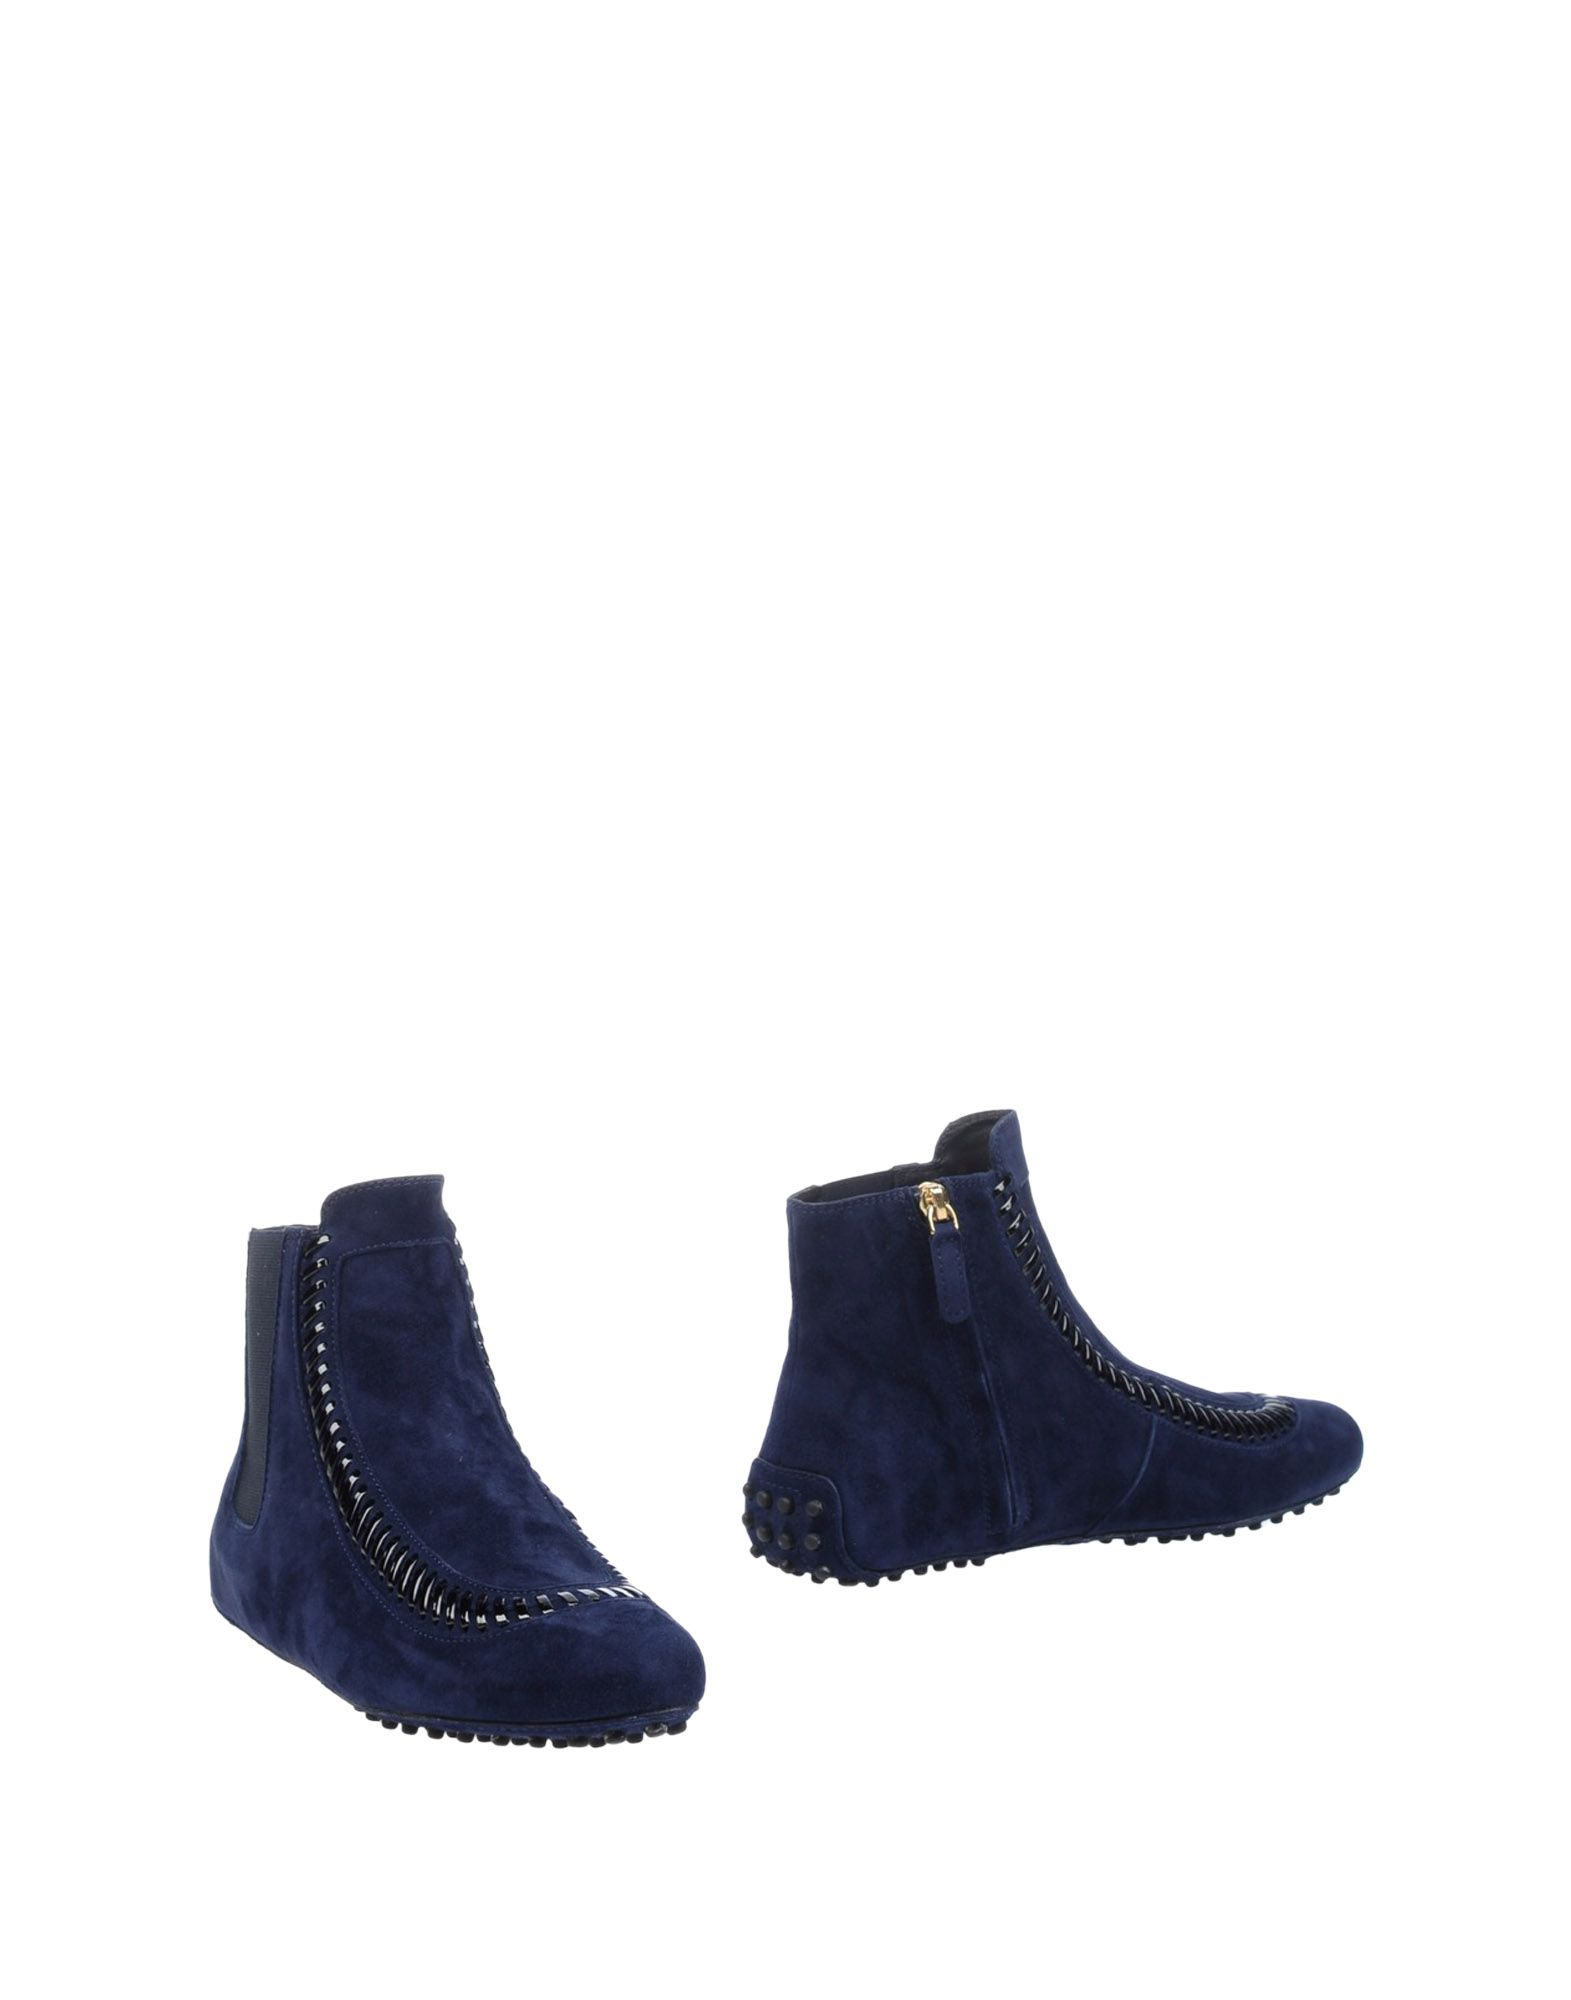 Bottine Tods Femme - Bottines Tods sur